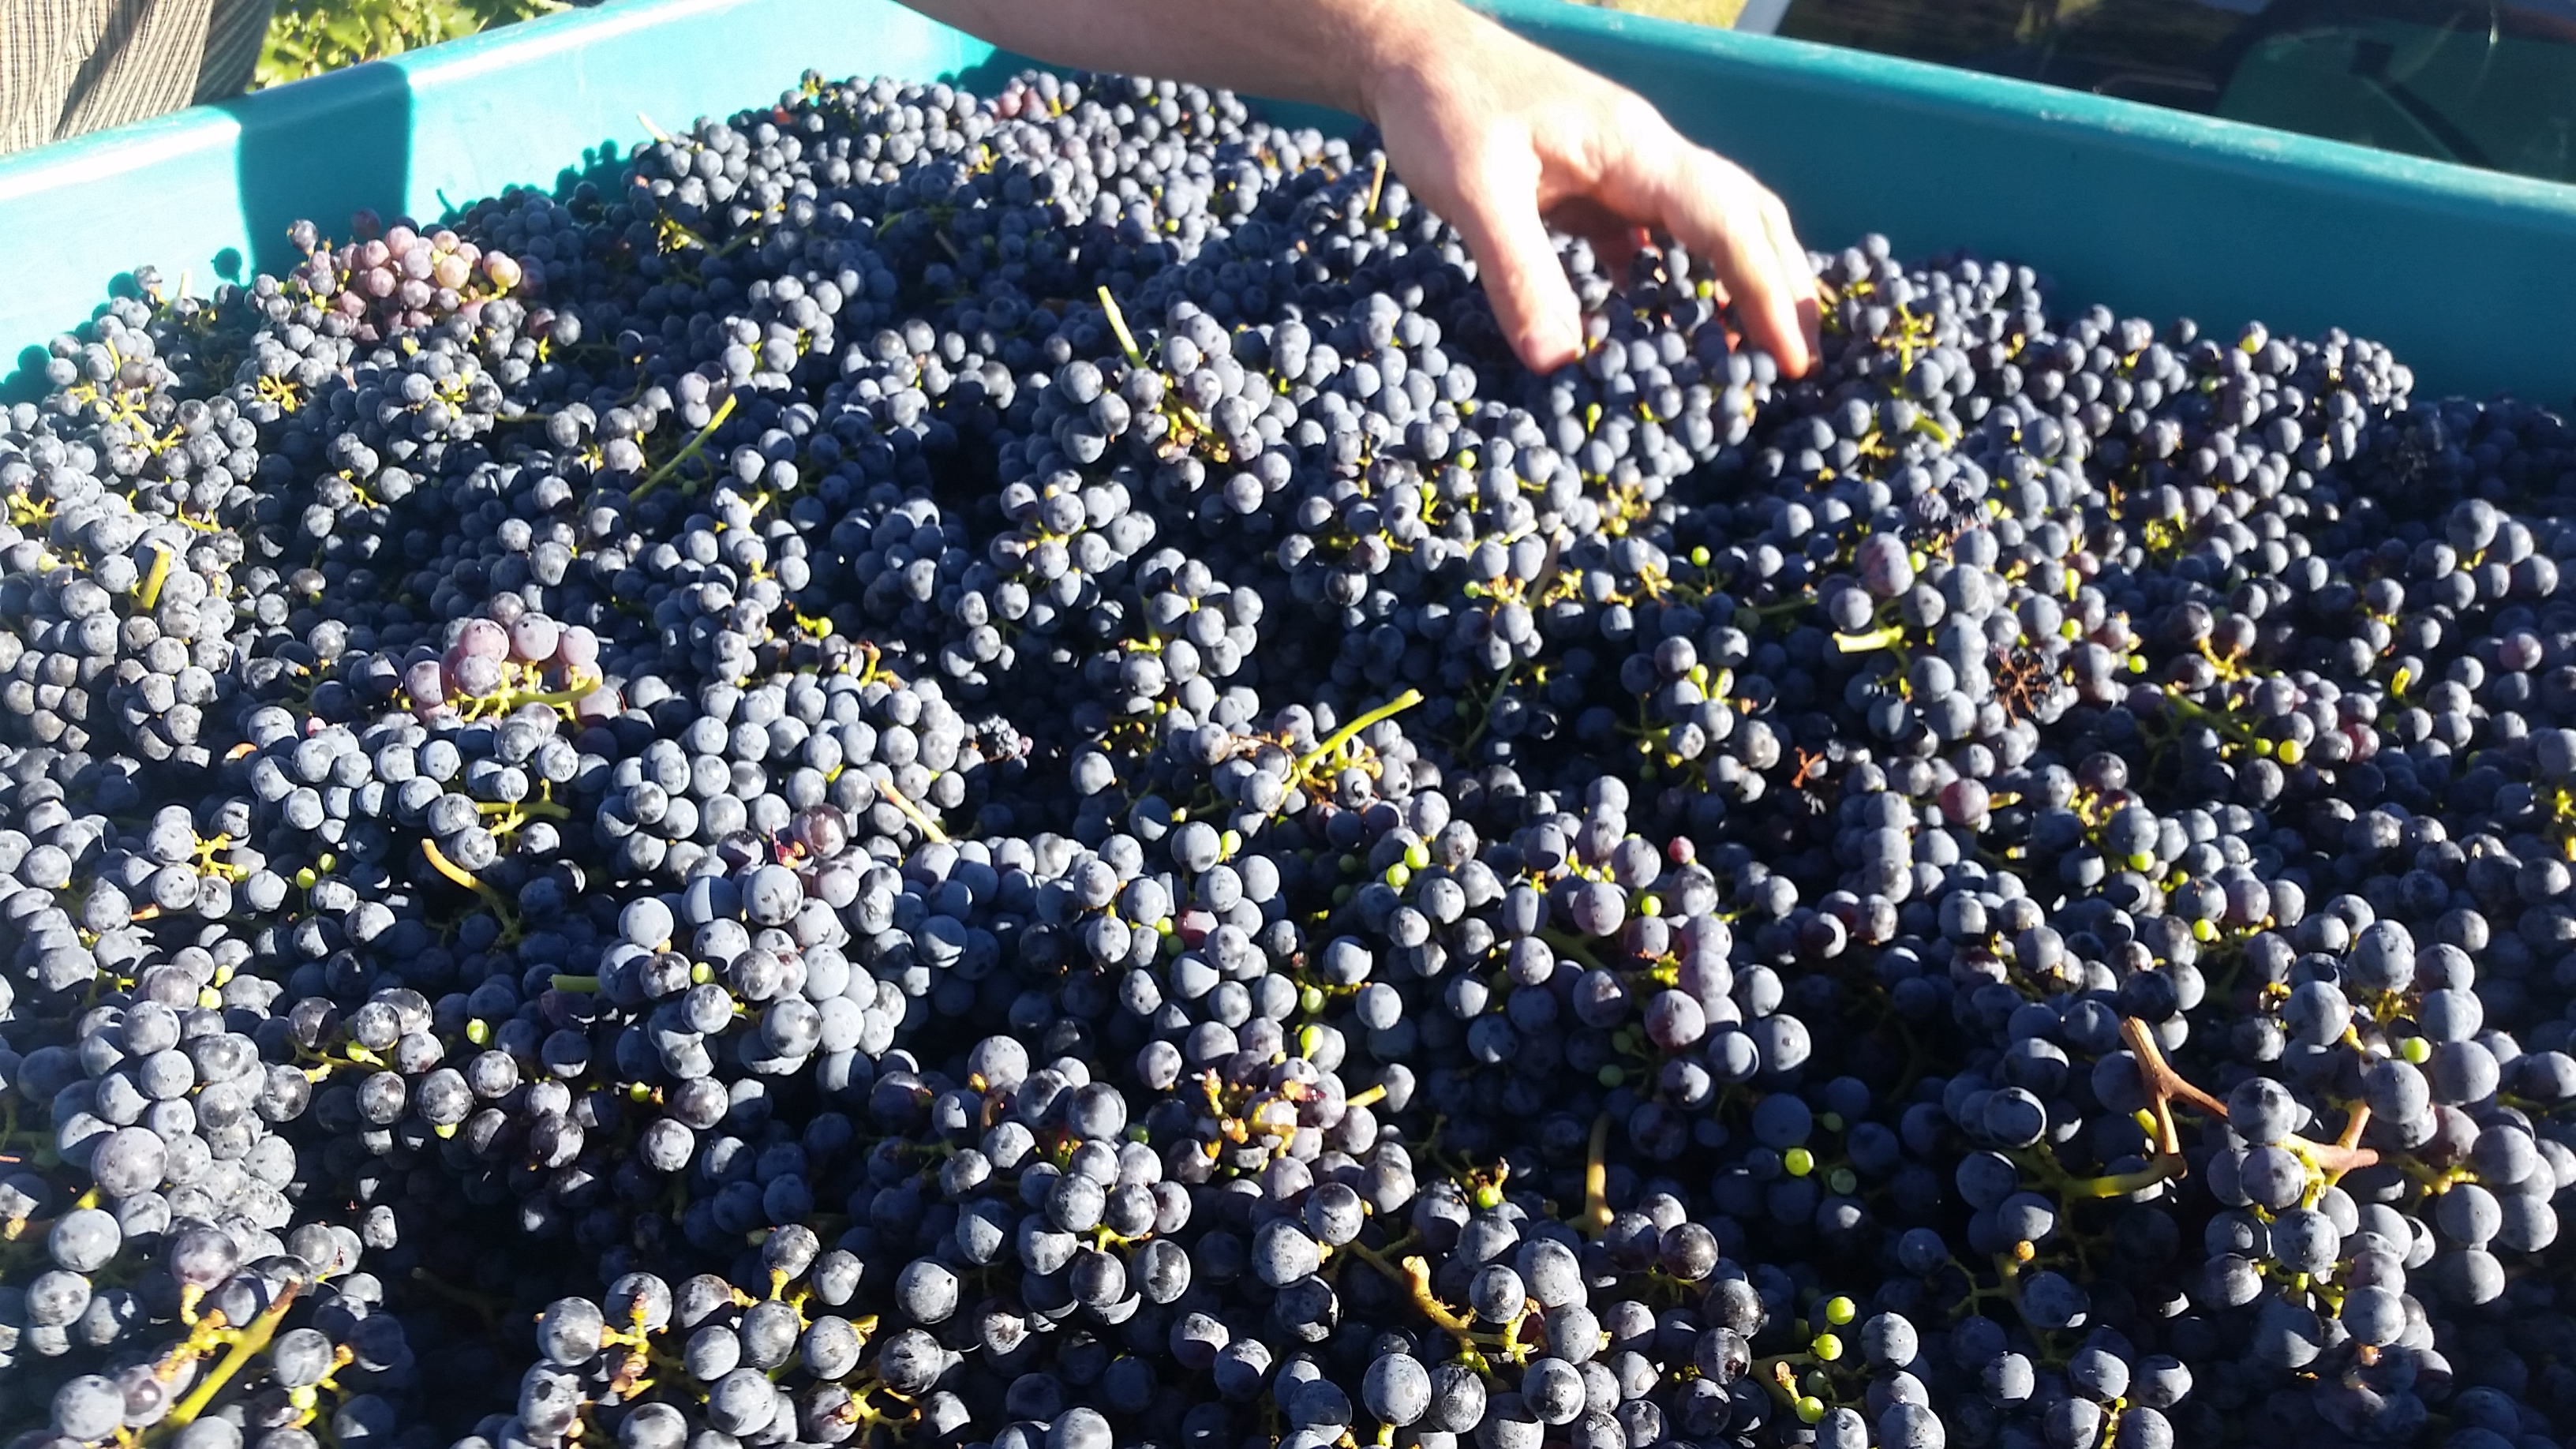 Vat full of Cabernet grapes